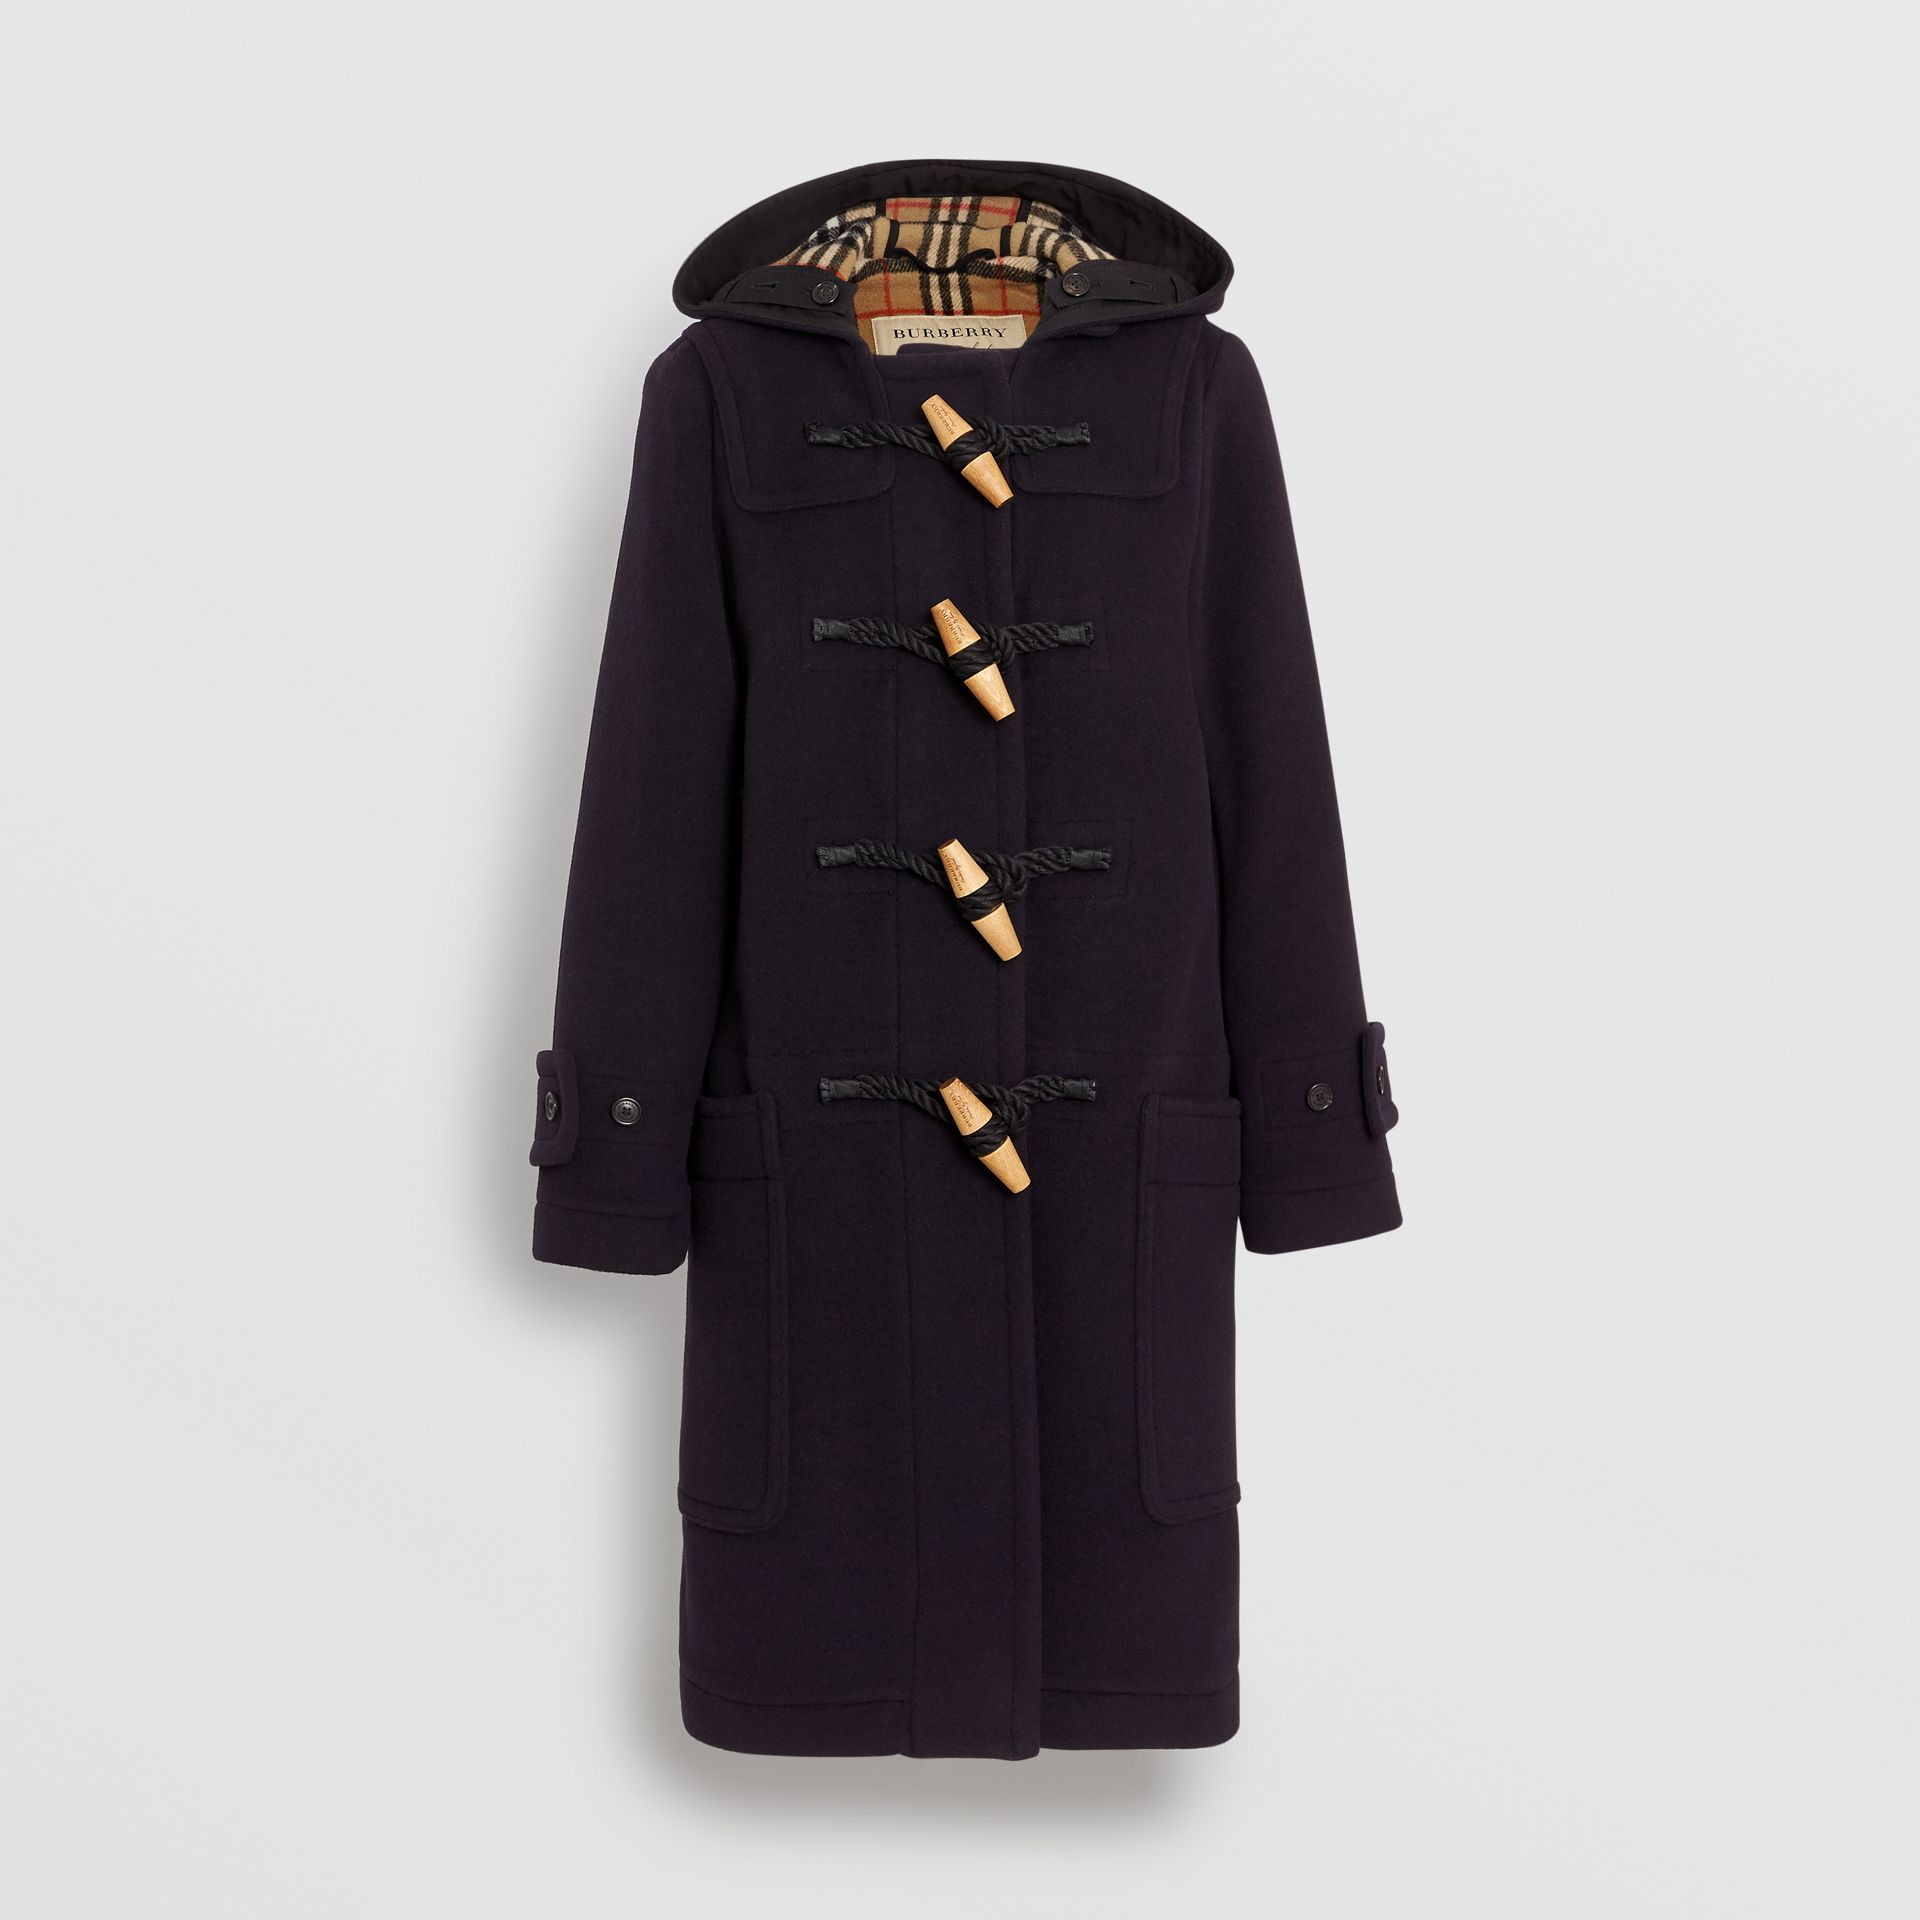 Wool Blend Oversized Duffle Coat in Navy - Women | Burberry - gallery image 6